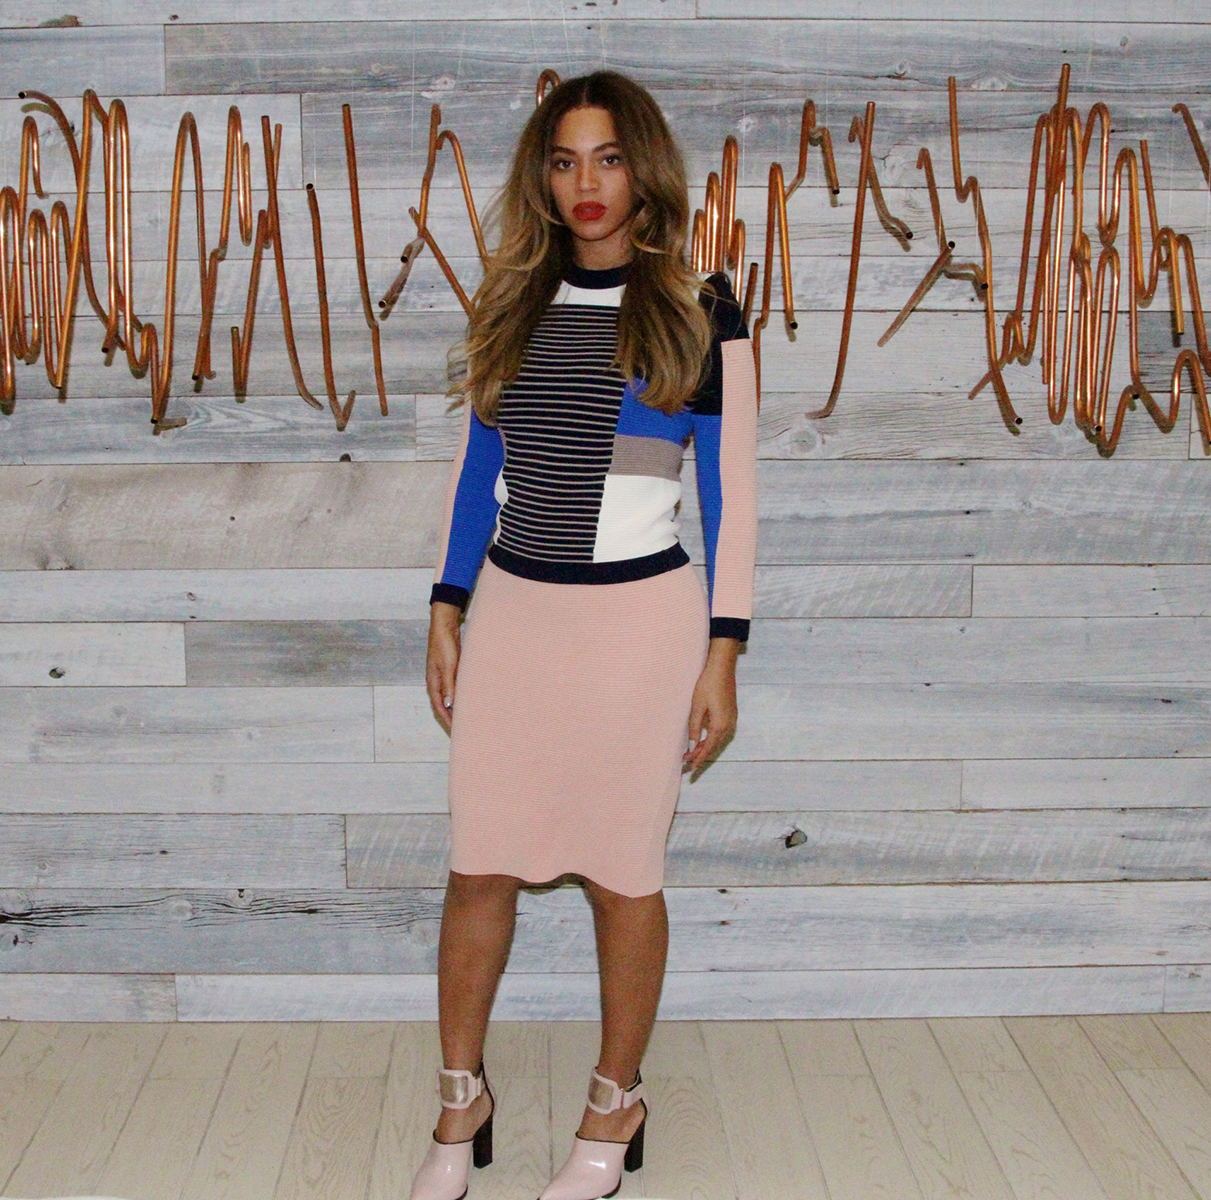 10. Beyonce gets glam with colour blocking